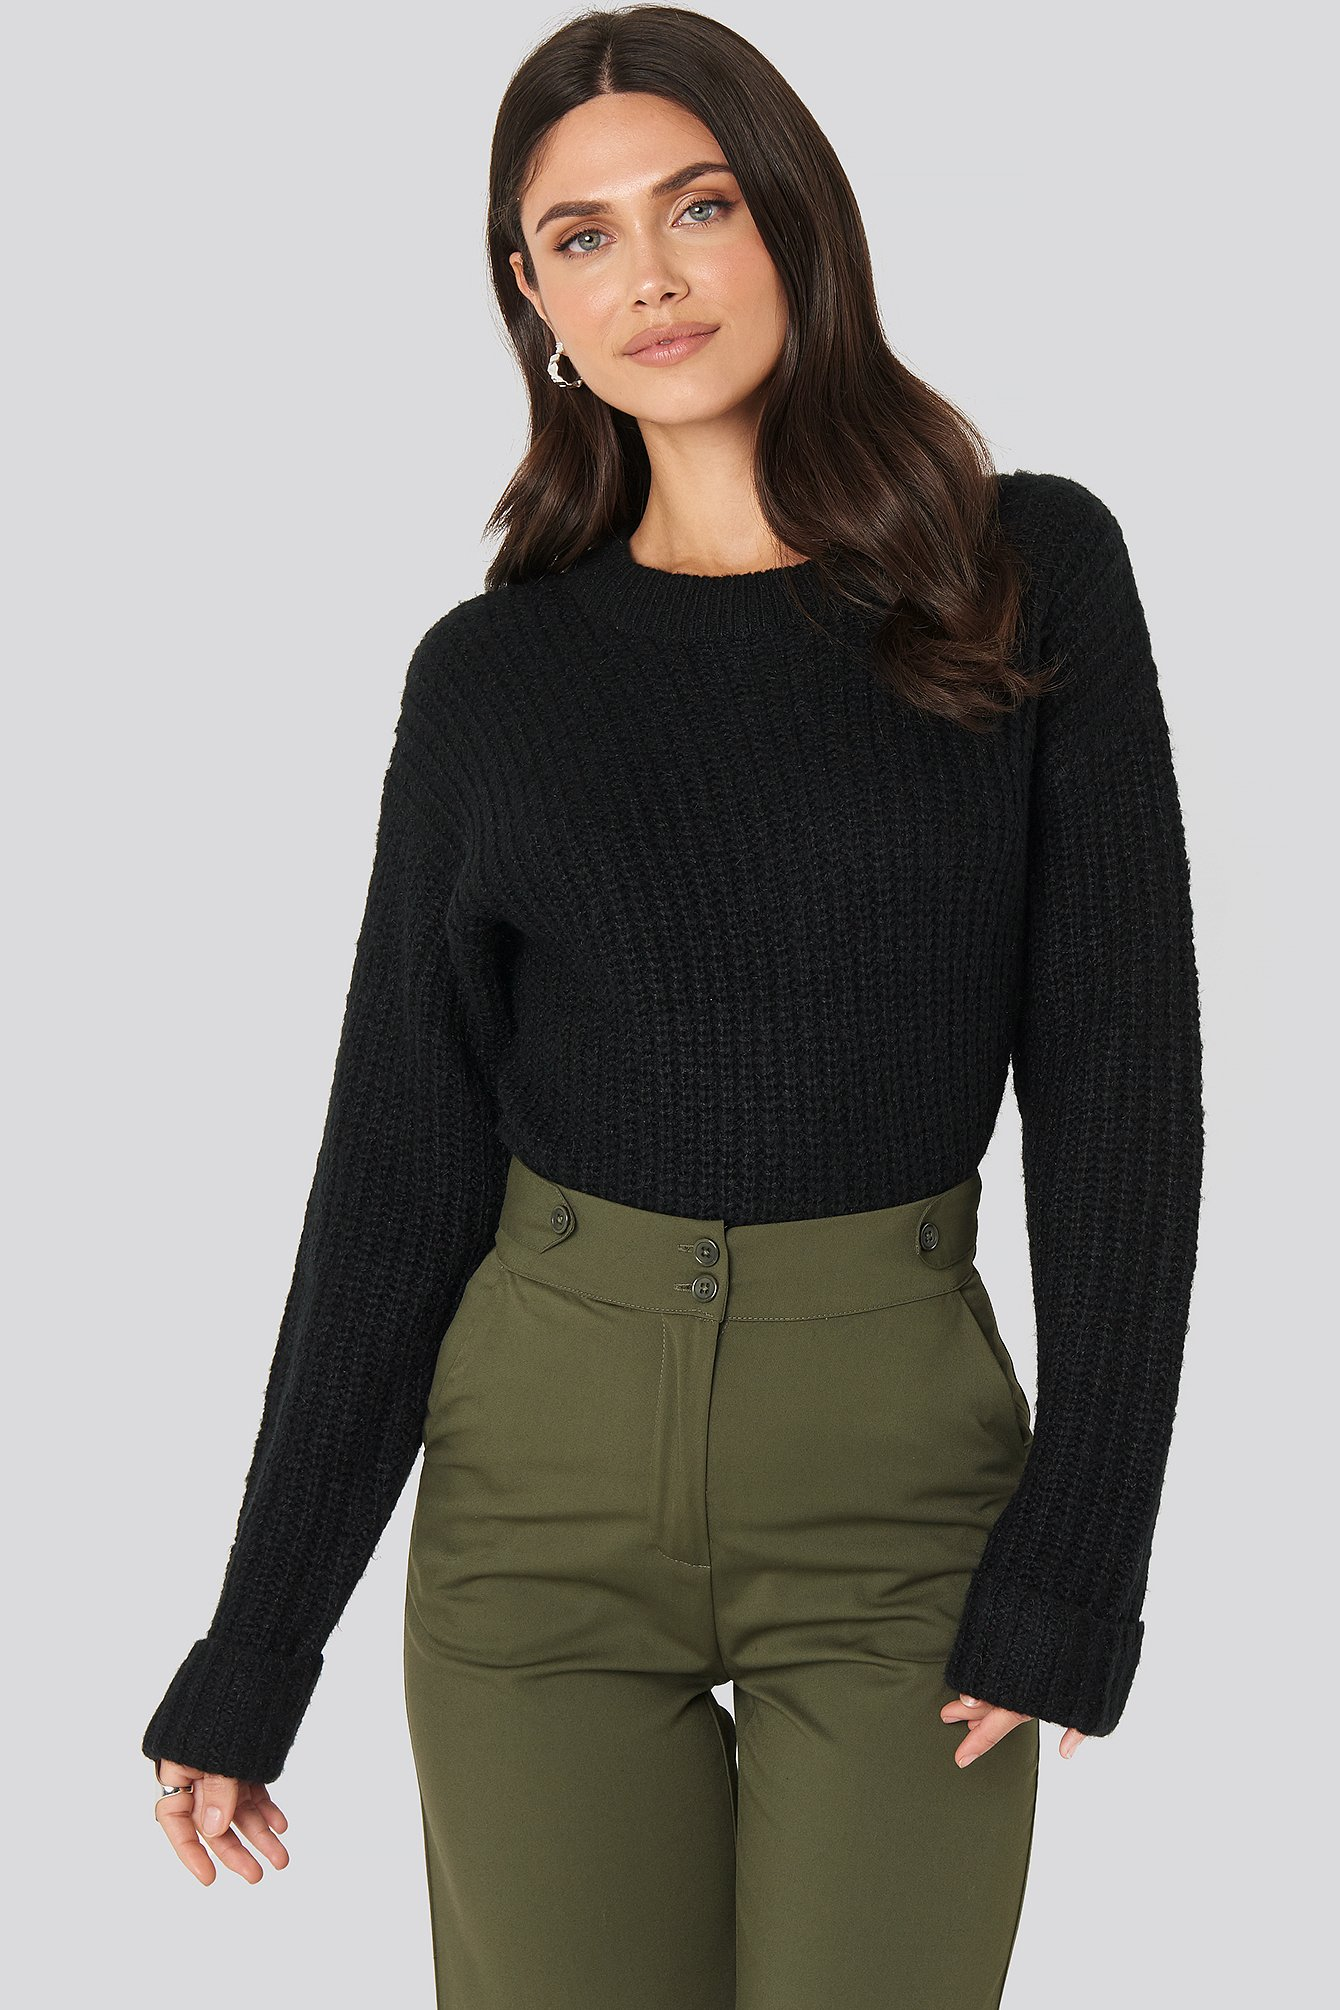 NA-KD Folded Sleeve Round Neck Knitted Sweater - Black